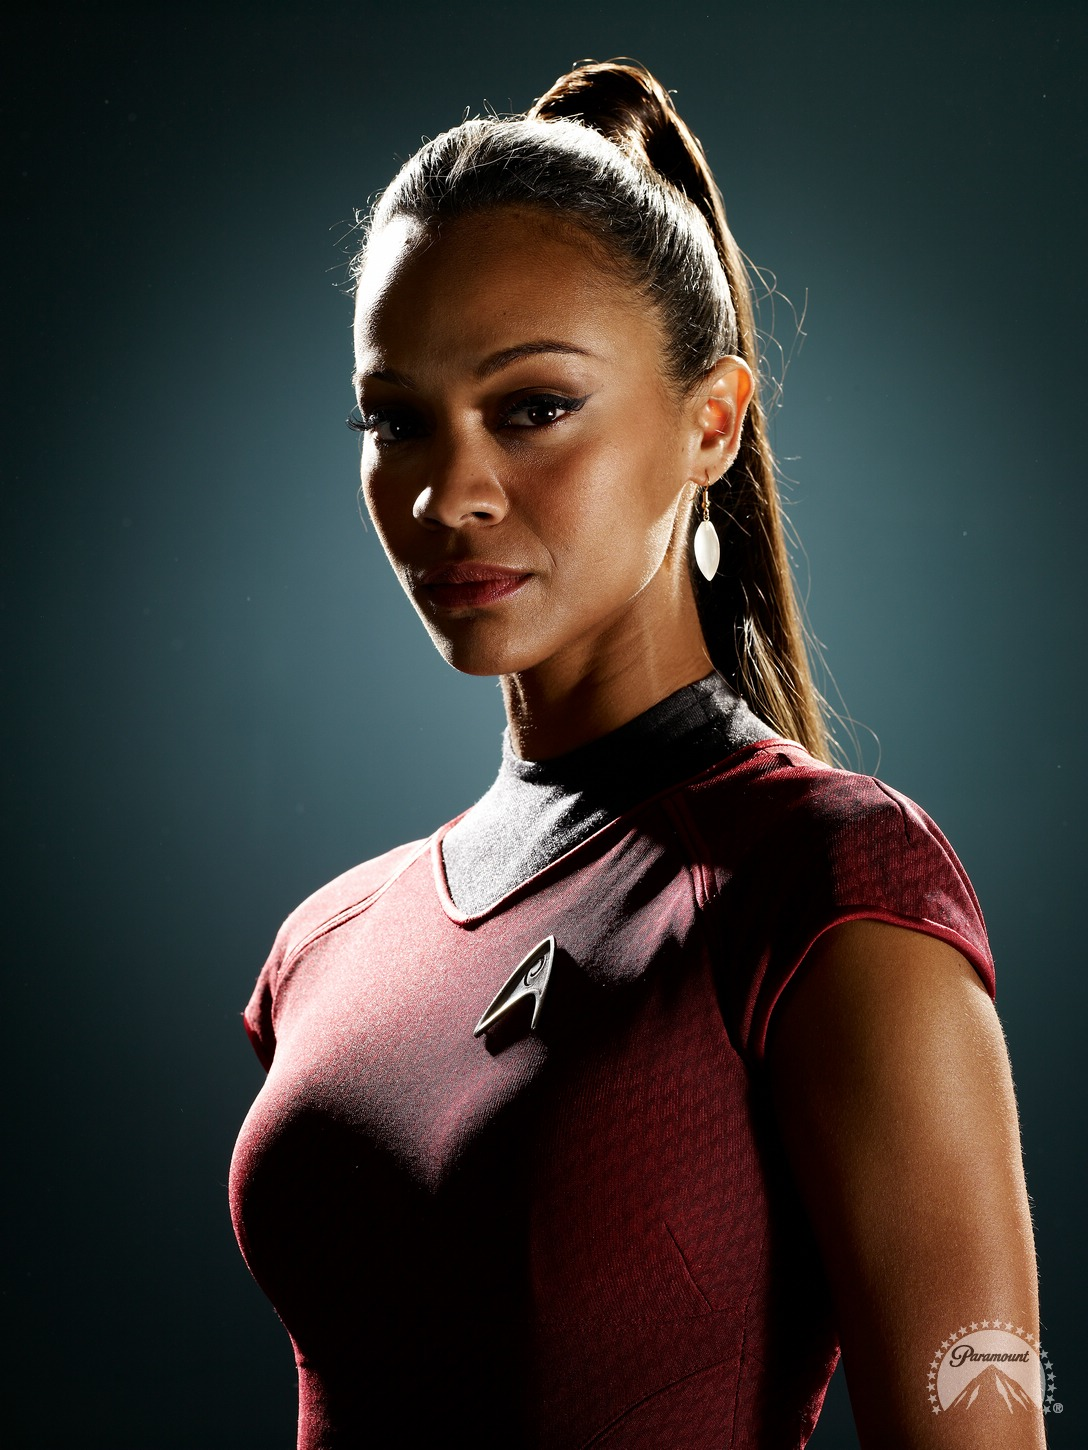 Zoe Saldana Star Trek Sex 55